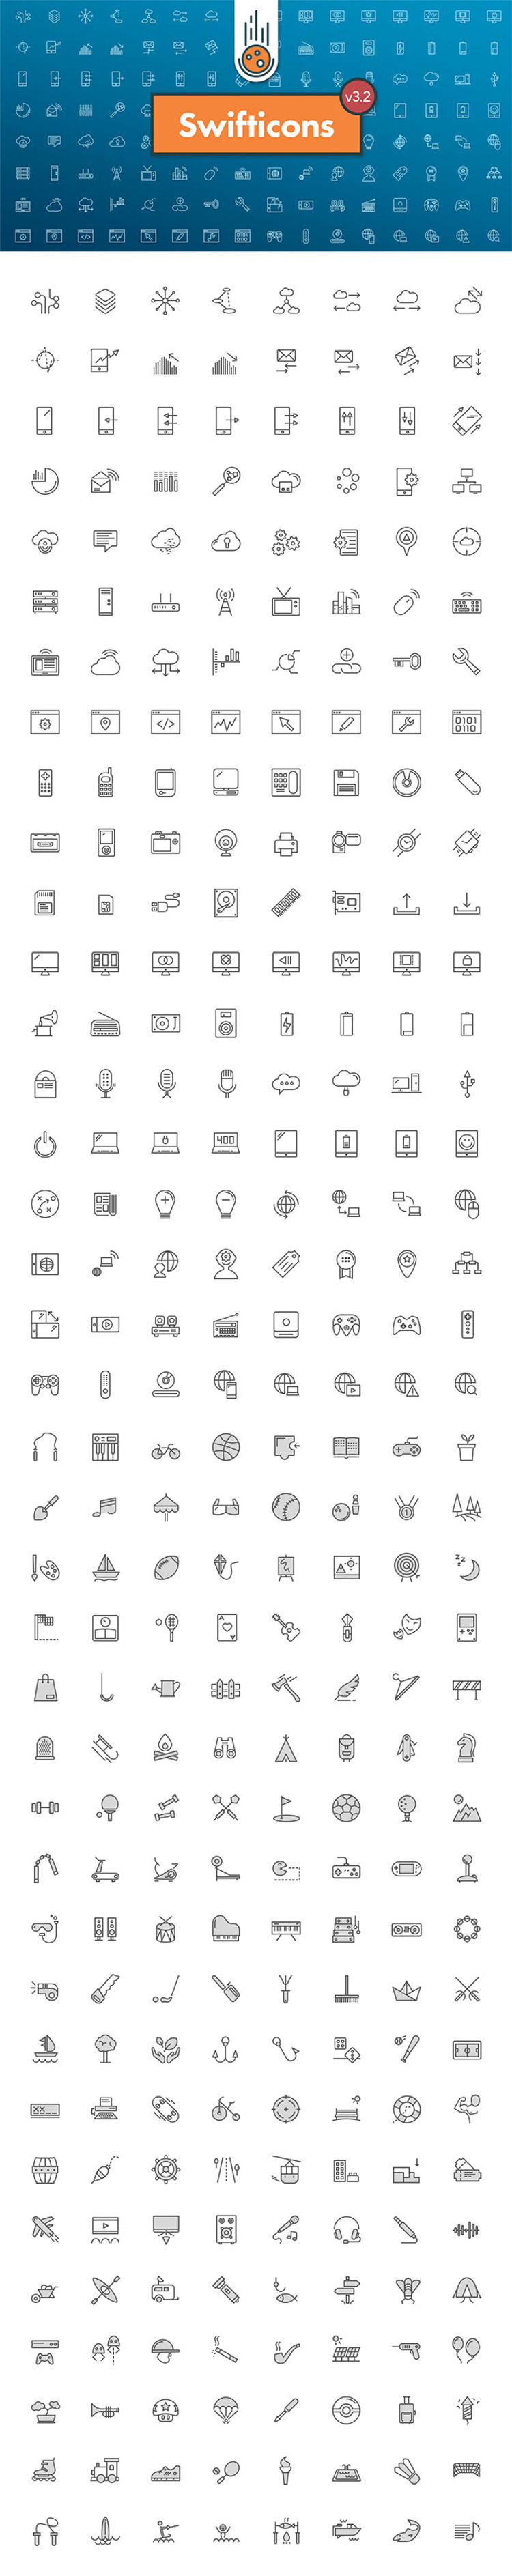 300+ Free Tech & Activities Icons